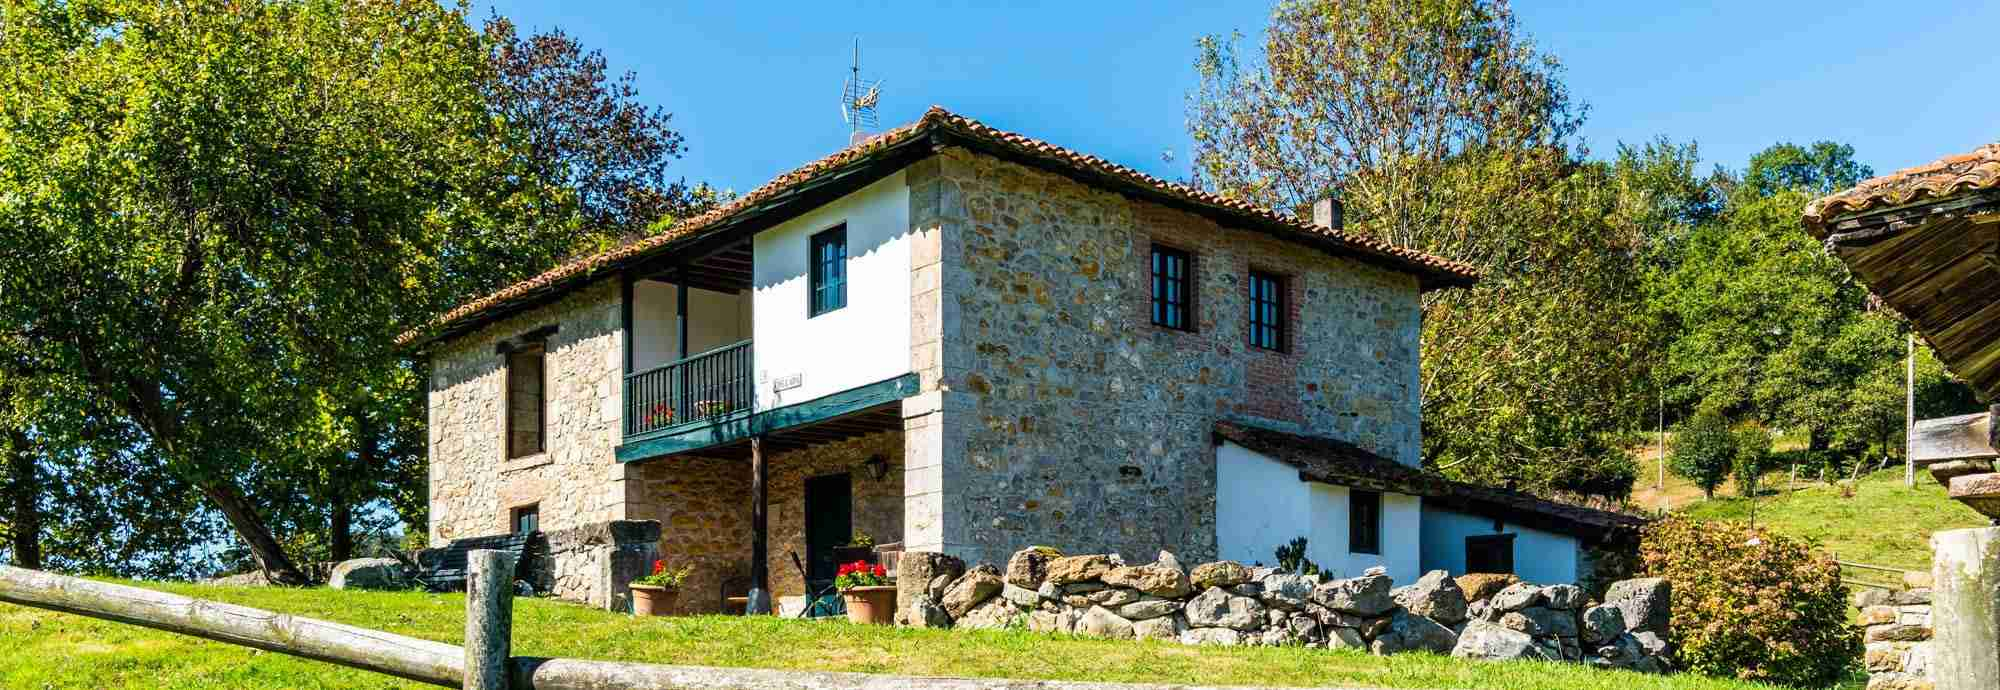 Secluded Asturias cottage for holidays in Northern Spain